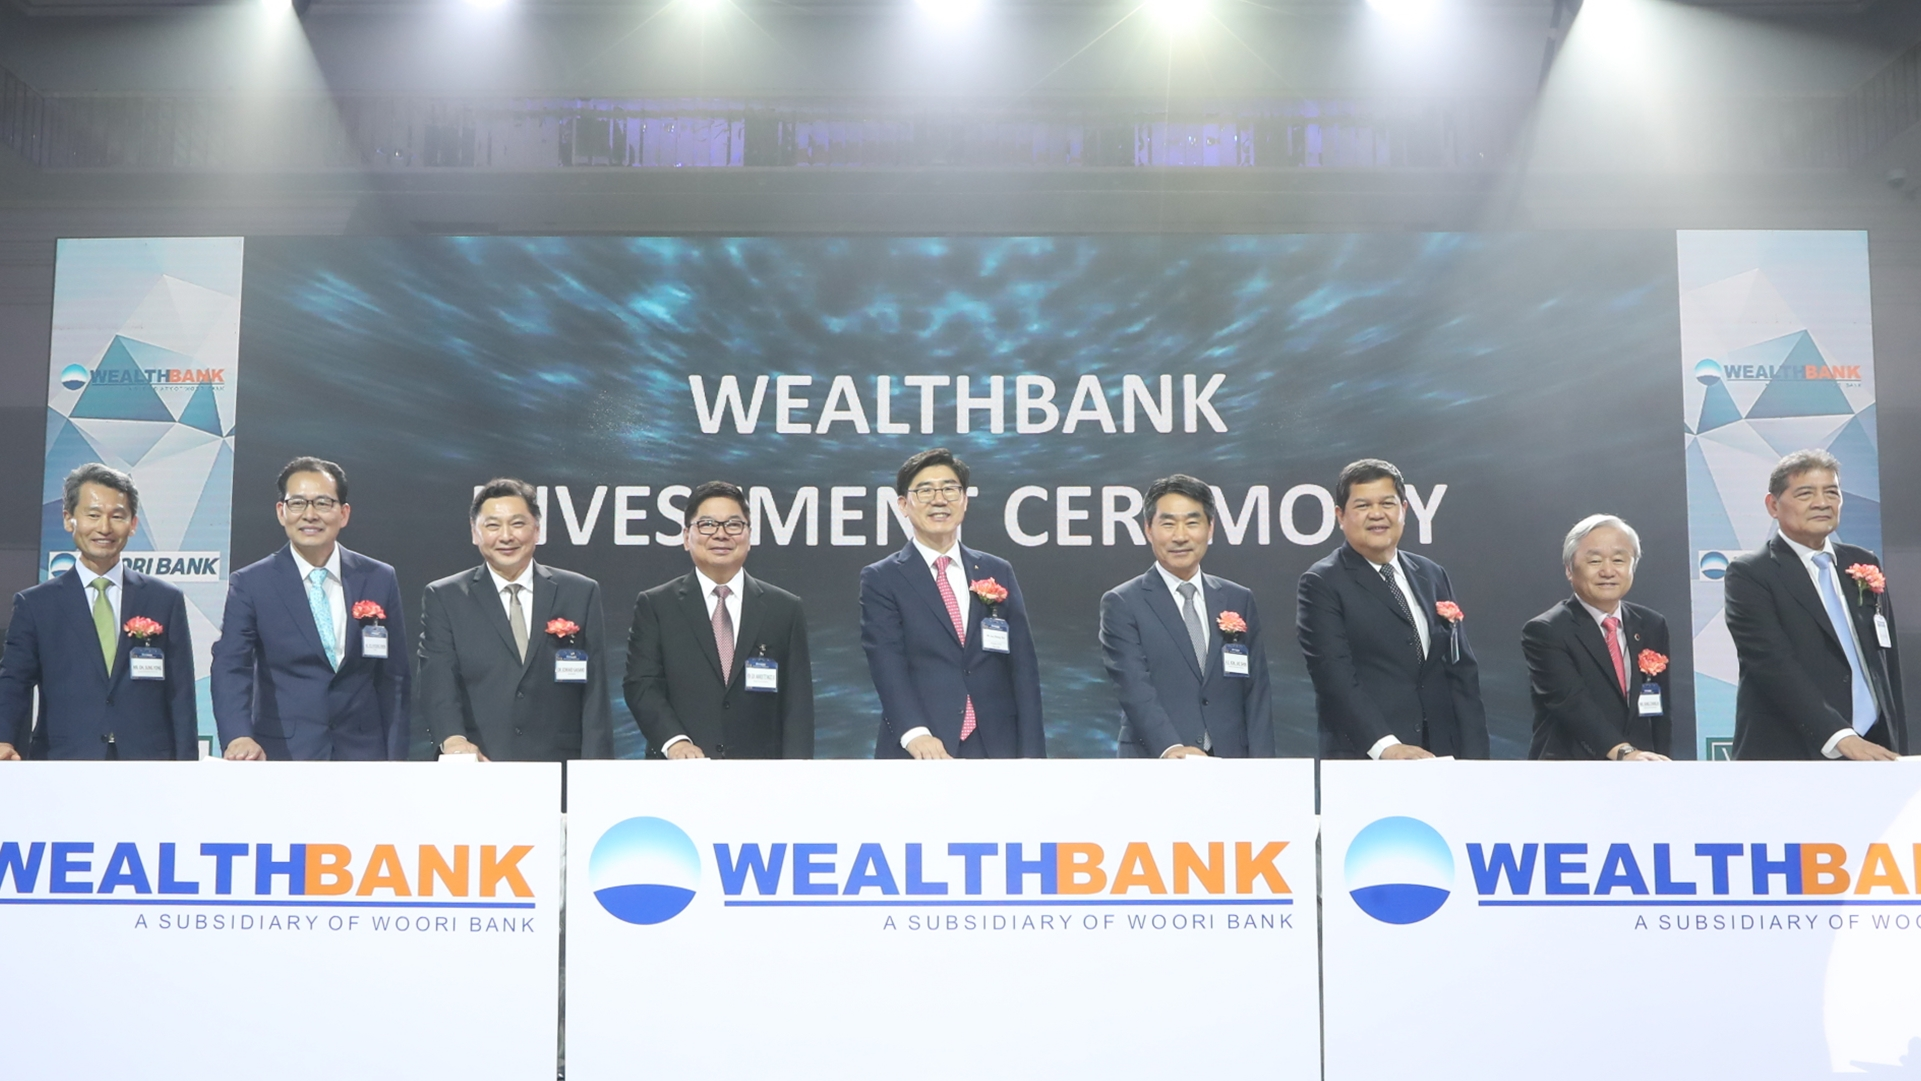 Lee Kwang-gu (5th from the left), CEO of Woori Bank is posing for a photo shoot with VIPs including Amando M. Tetangco, Jr. with the President of the Philippine Central Bank (4th from the left) in a ceremony in honor of its investment in Wealth Developmen